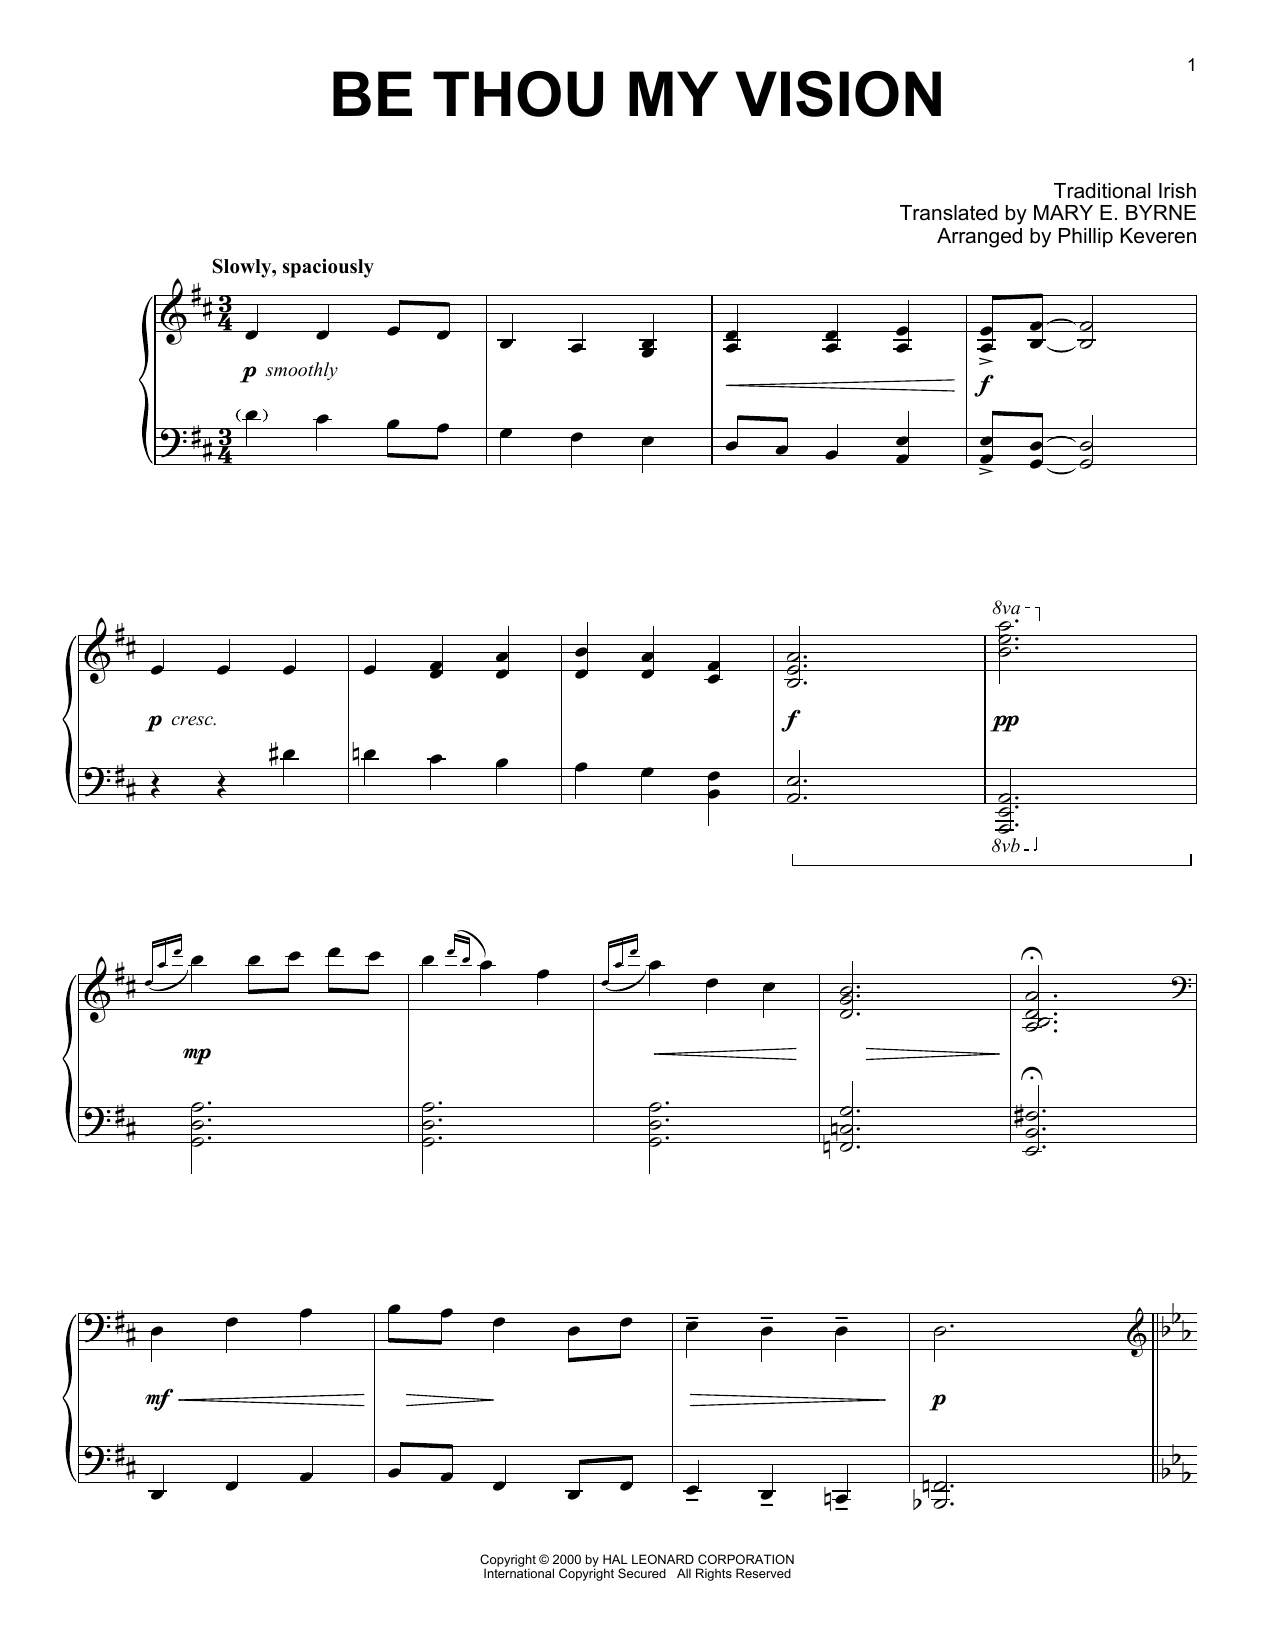 Be Thou My Vision Chords Phillip Keveren Be Thou My Vision Sheet Music Notes Chords Download Printable Piano Solo Sku 415739